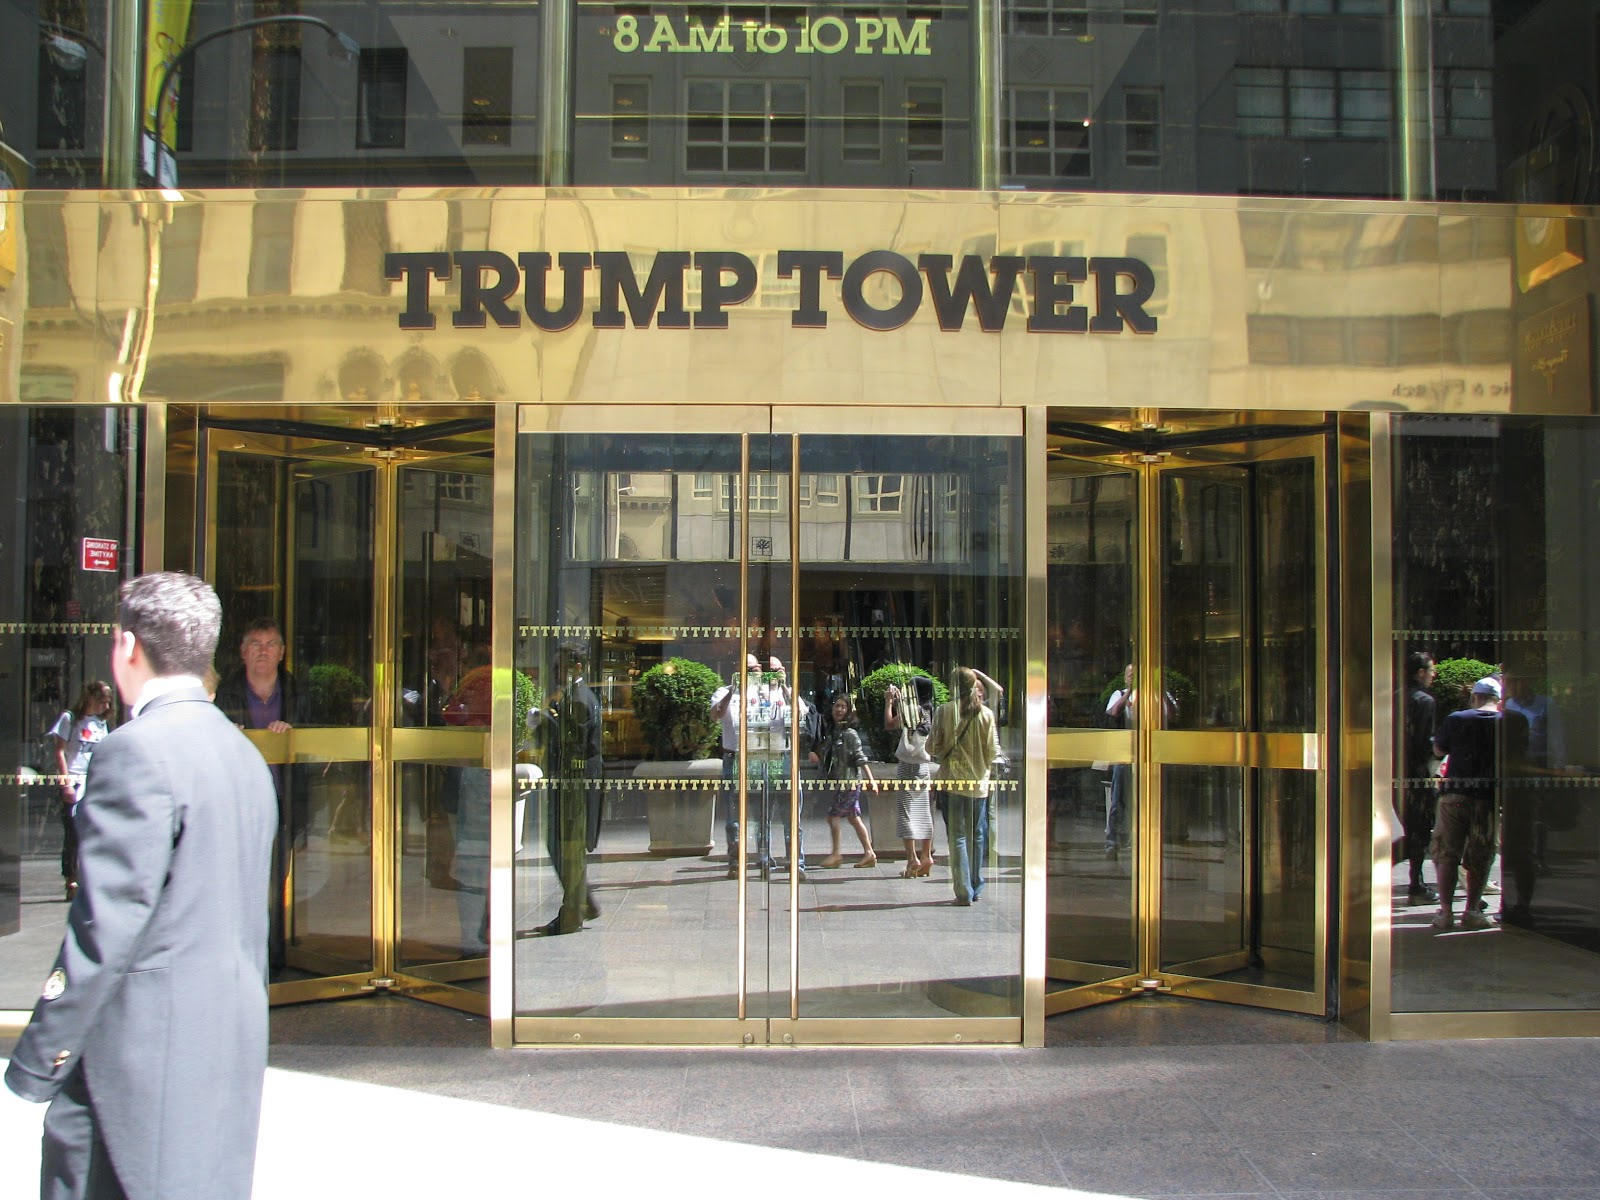 attractions trump tower parking